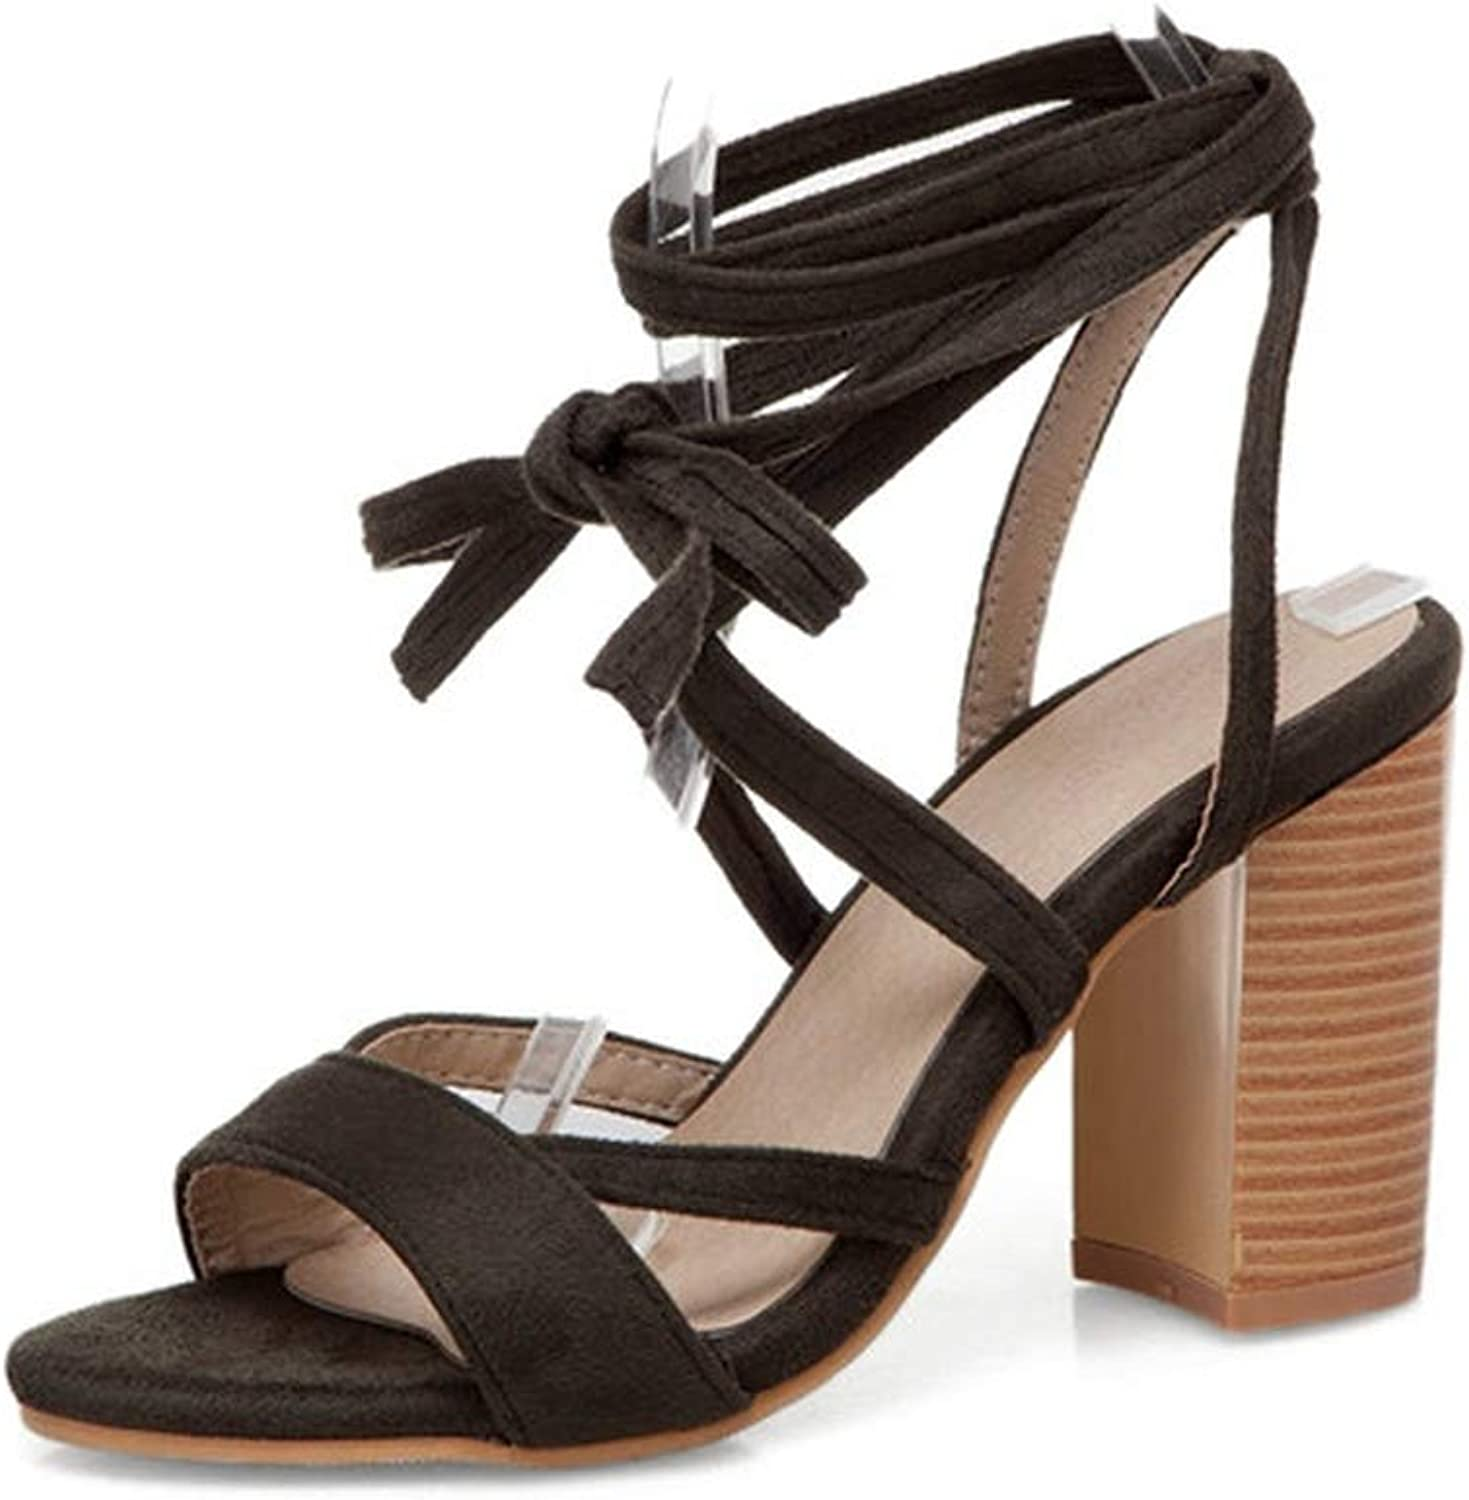 Summer Pointed Toe Sandals Sexy Gladiator High Heel Ankle Boots Buckle Party Wedding shoes